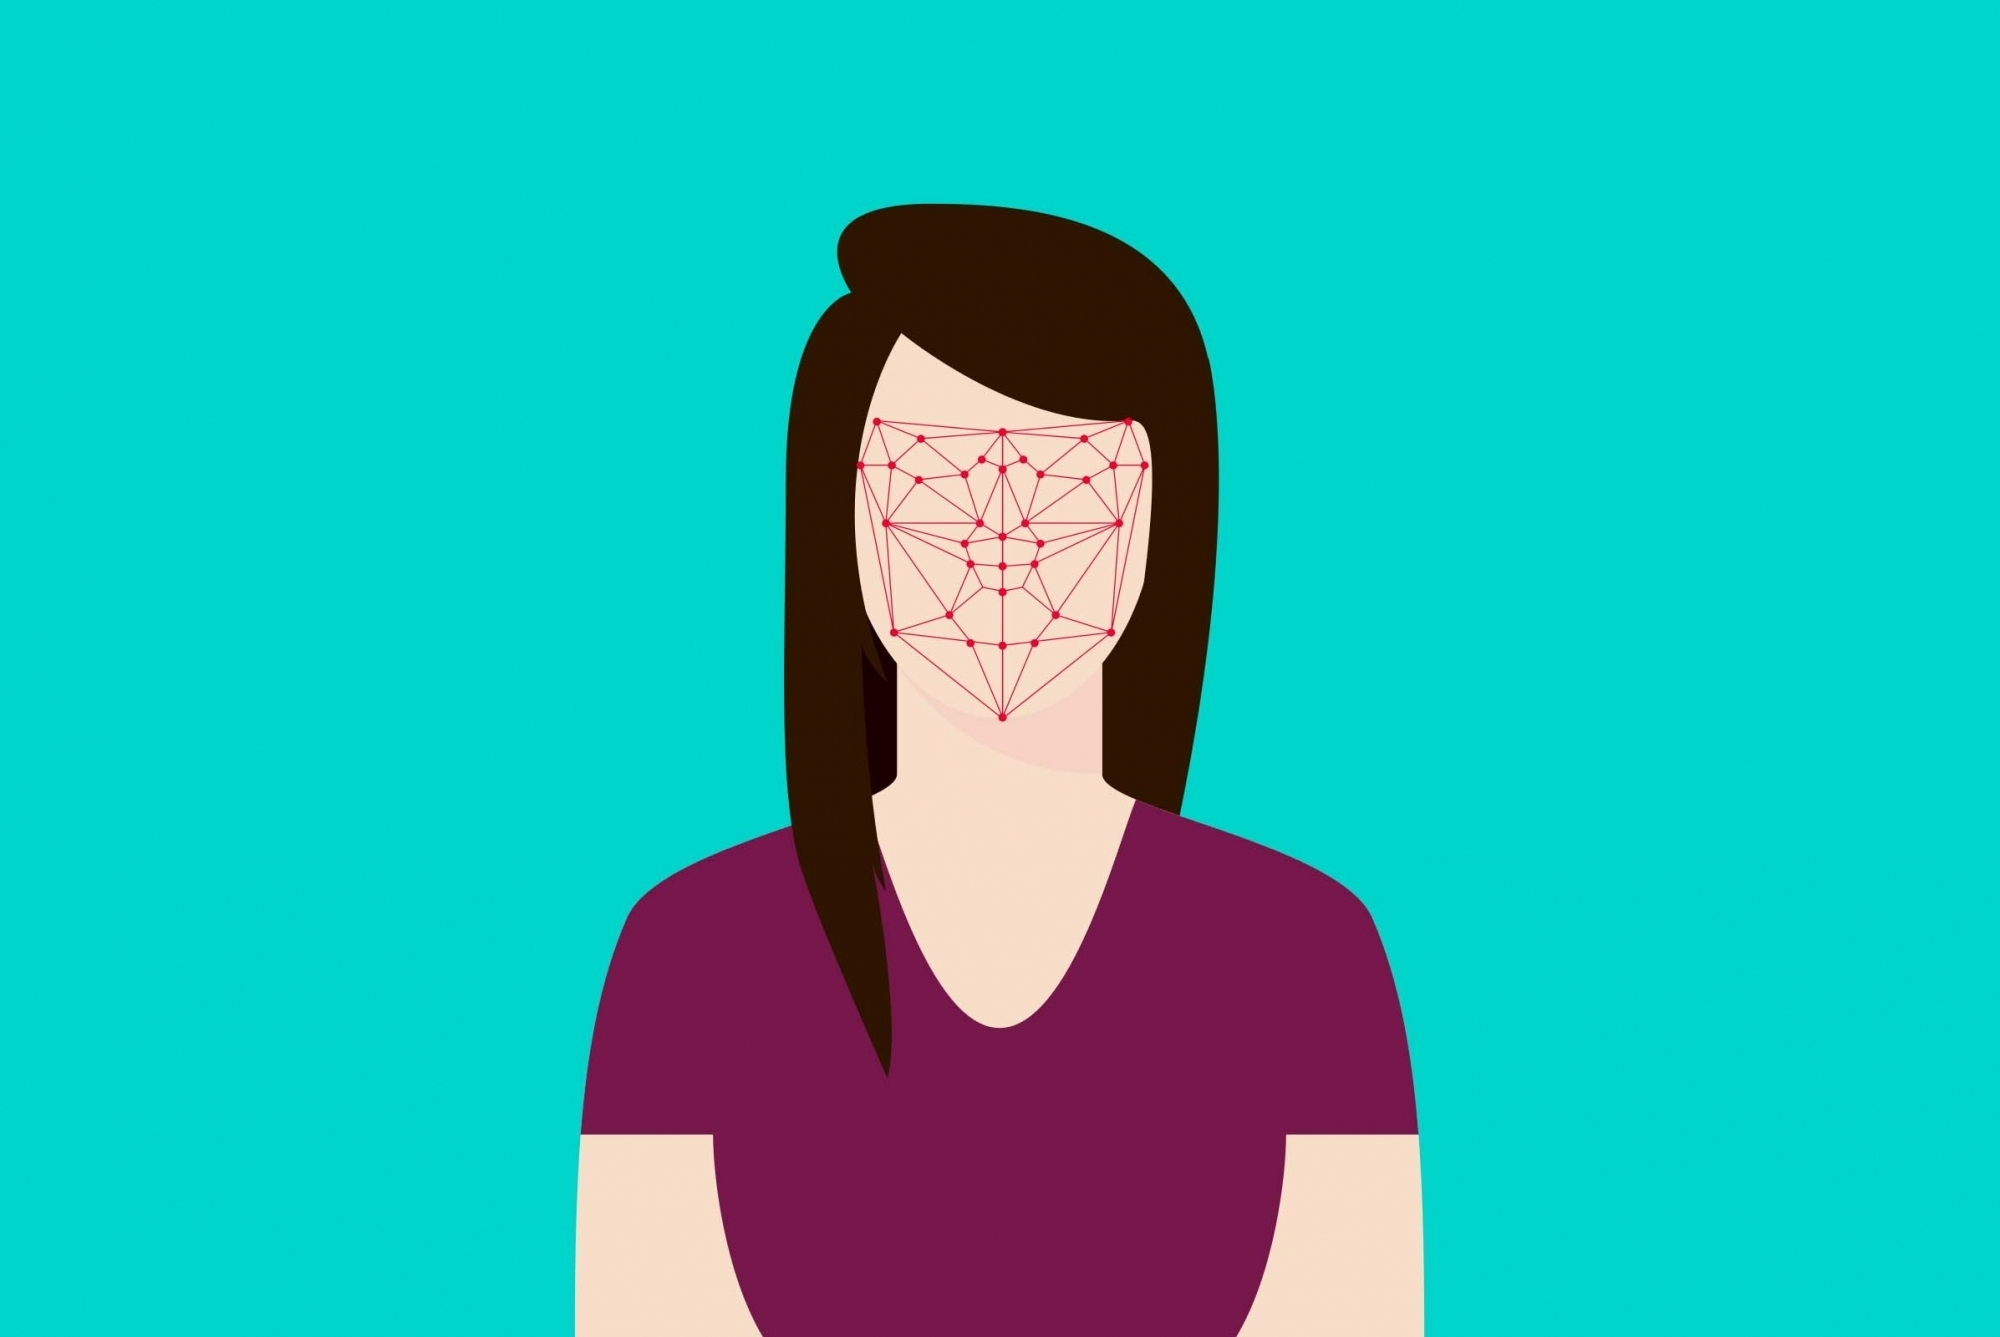 San Francisco becomes first US city to ban face recognition technology